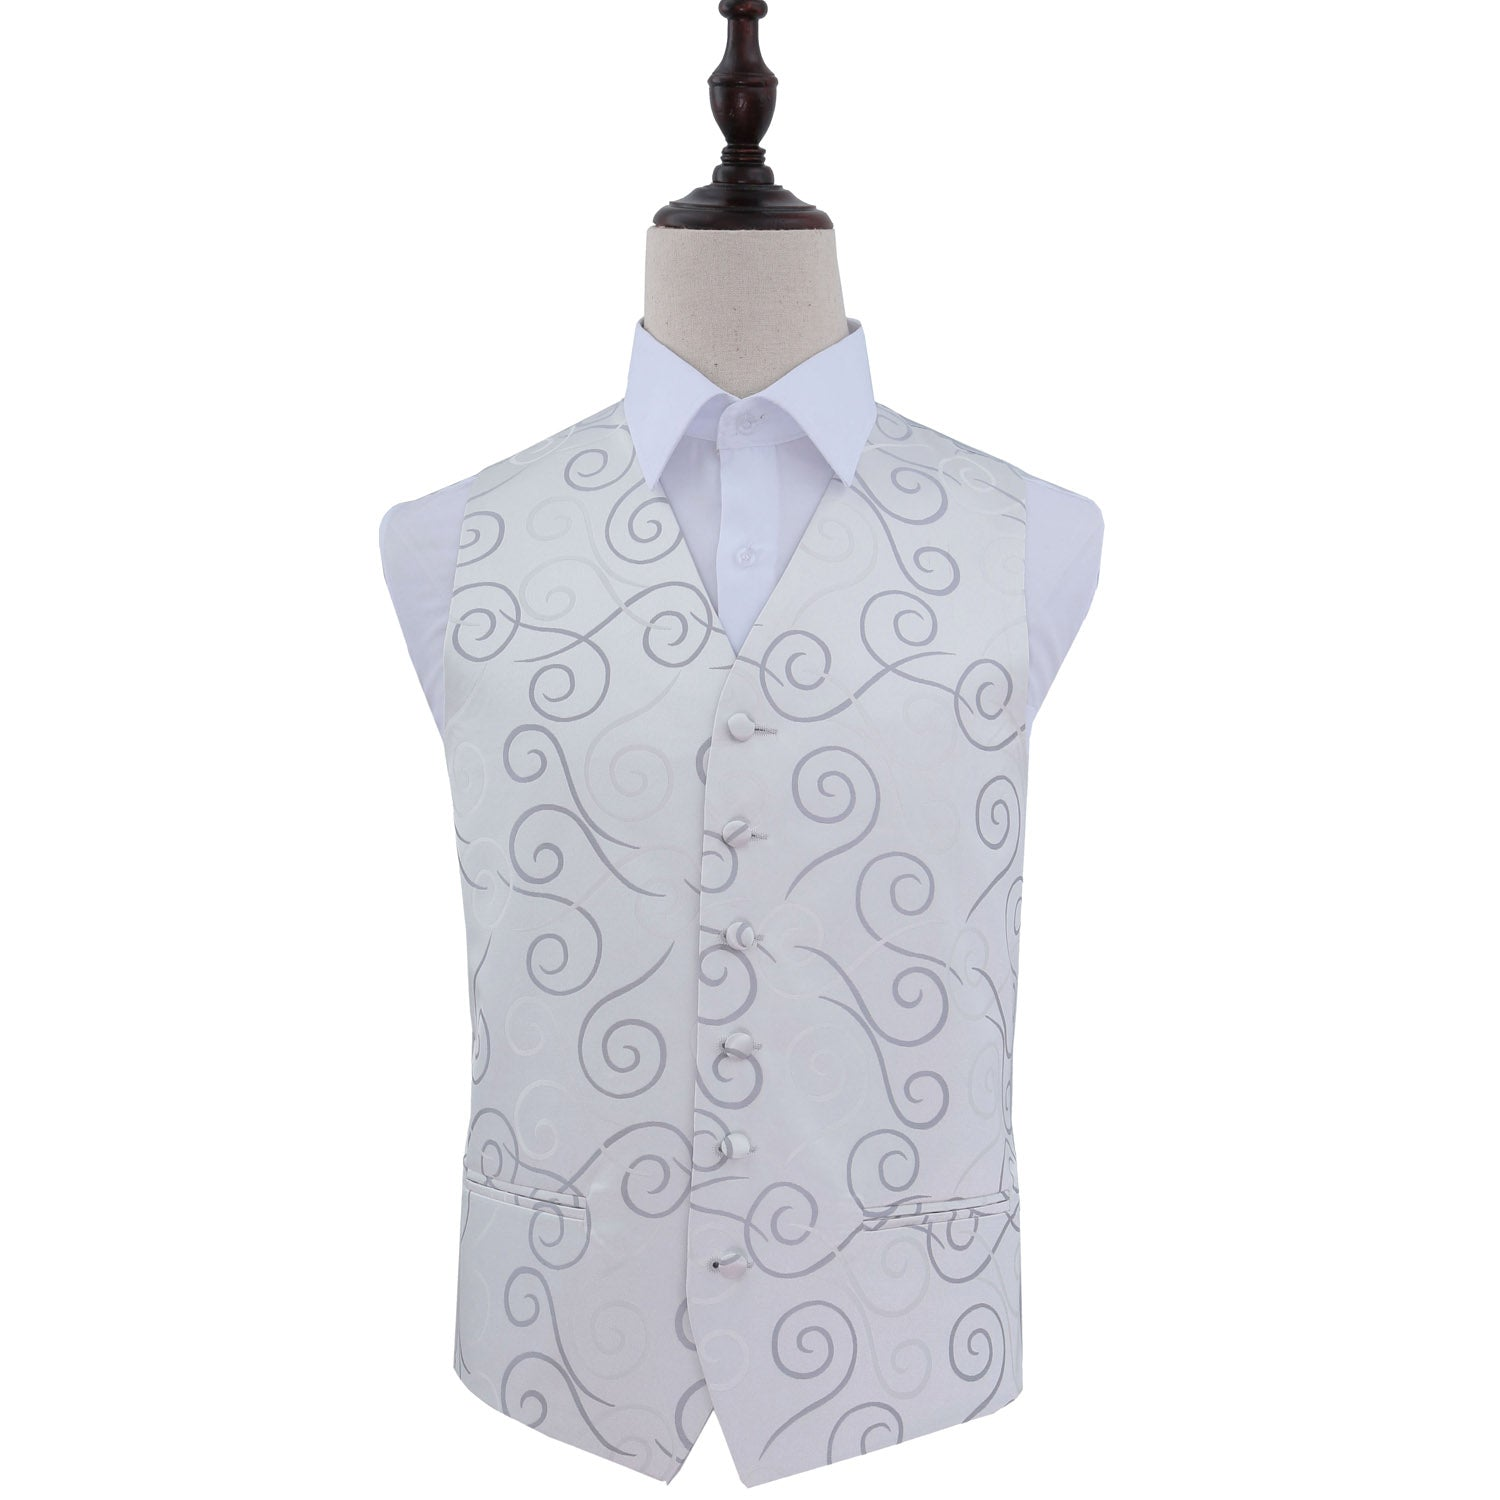 Scroll Waistcoat - Silver, 40', Clothing by Low Cost Gifts